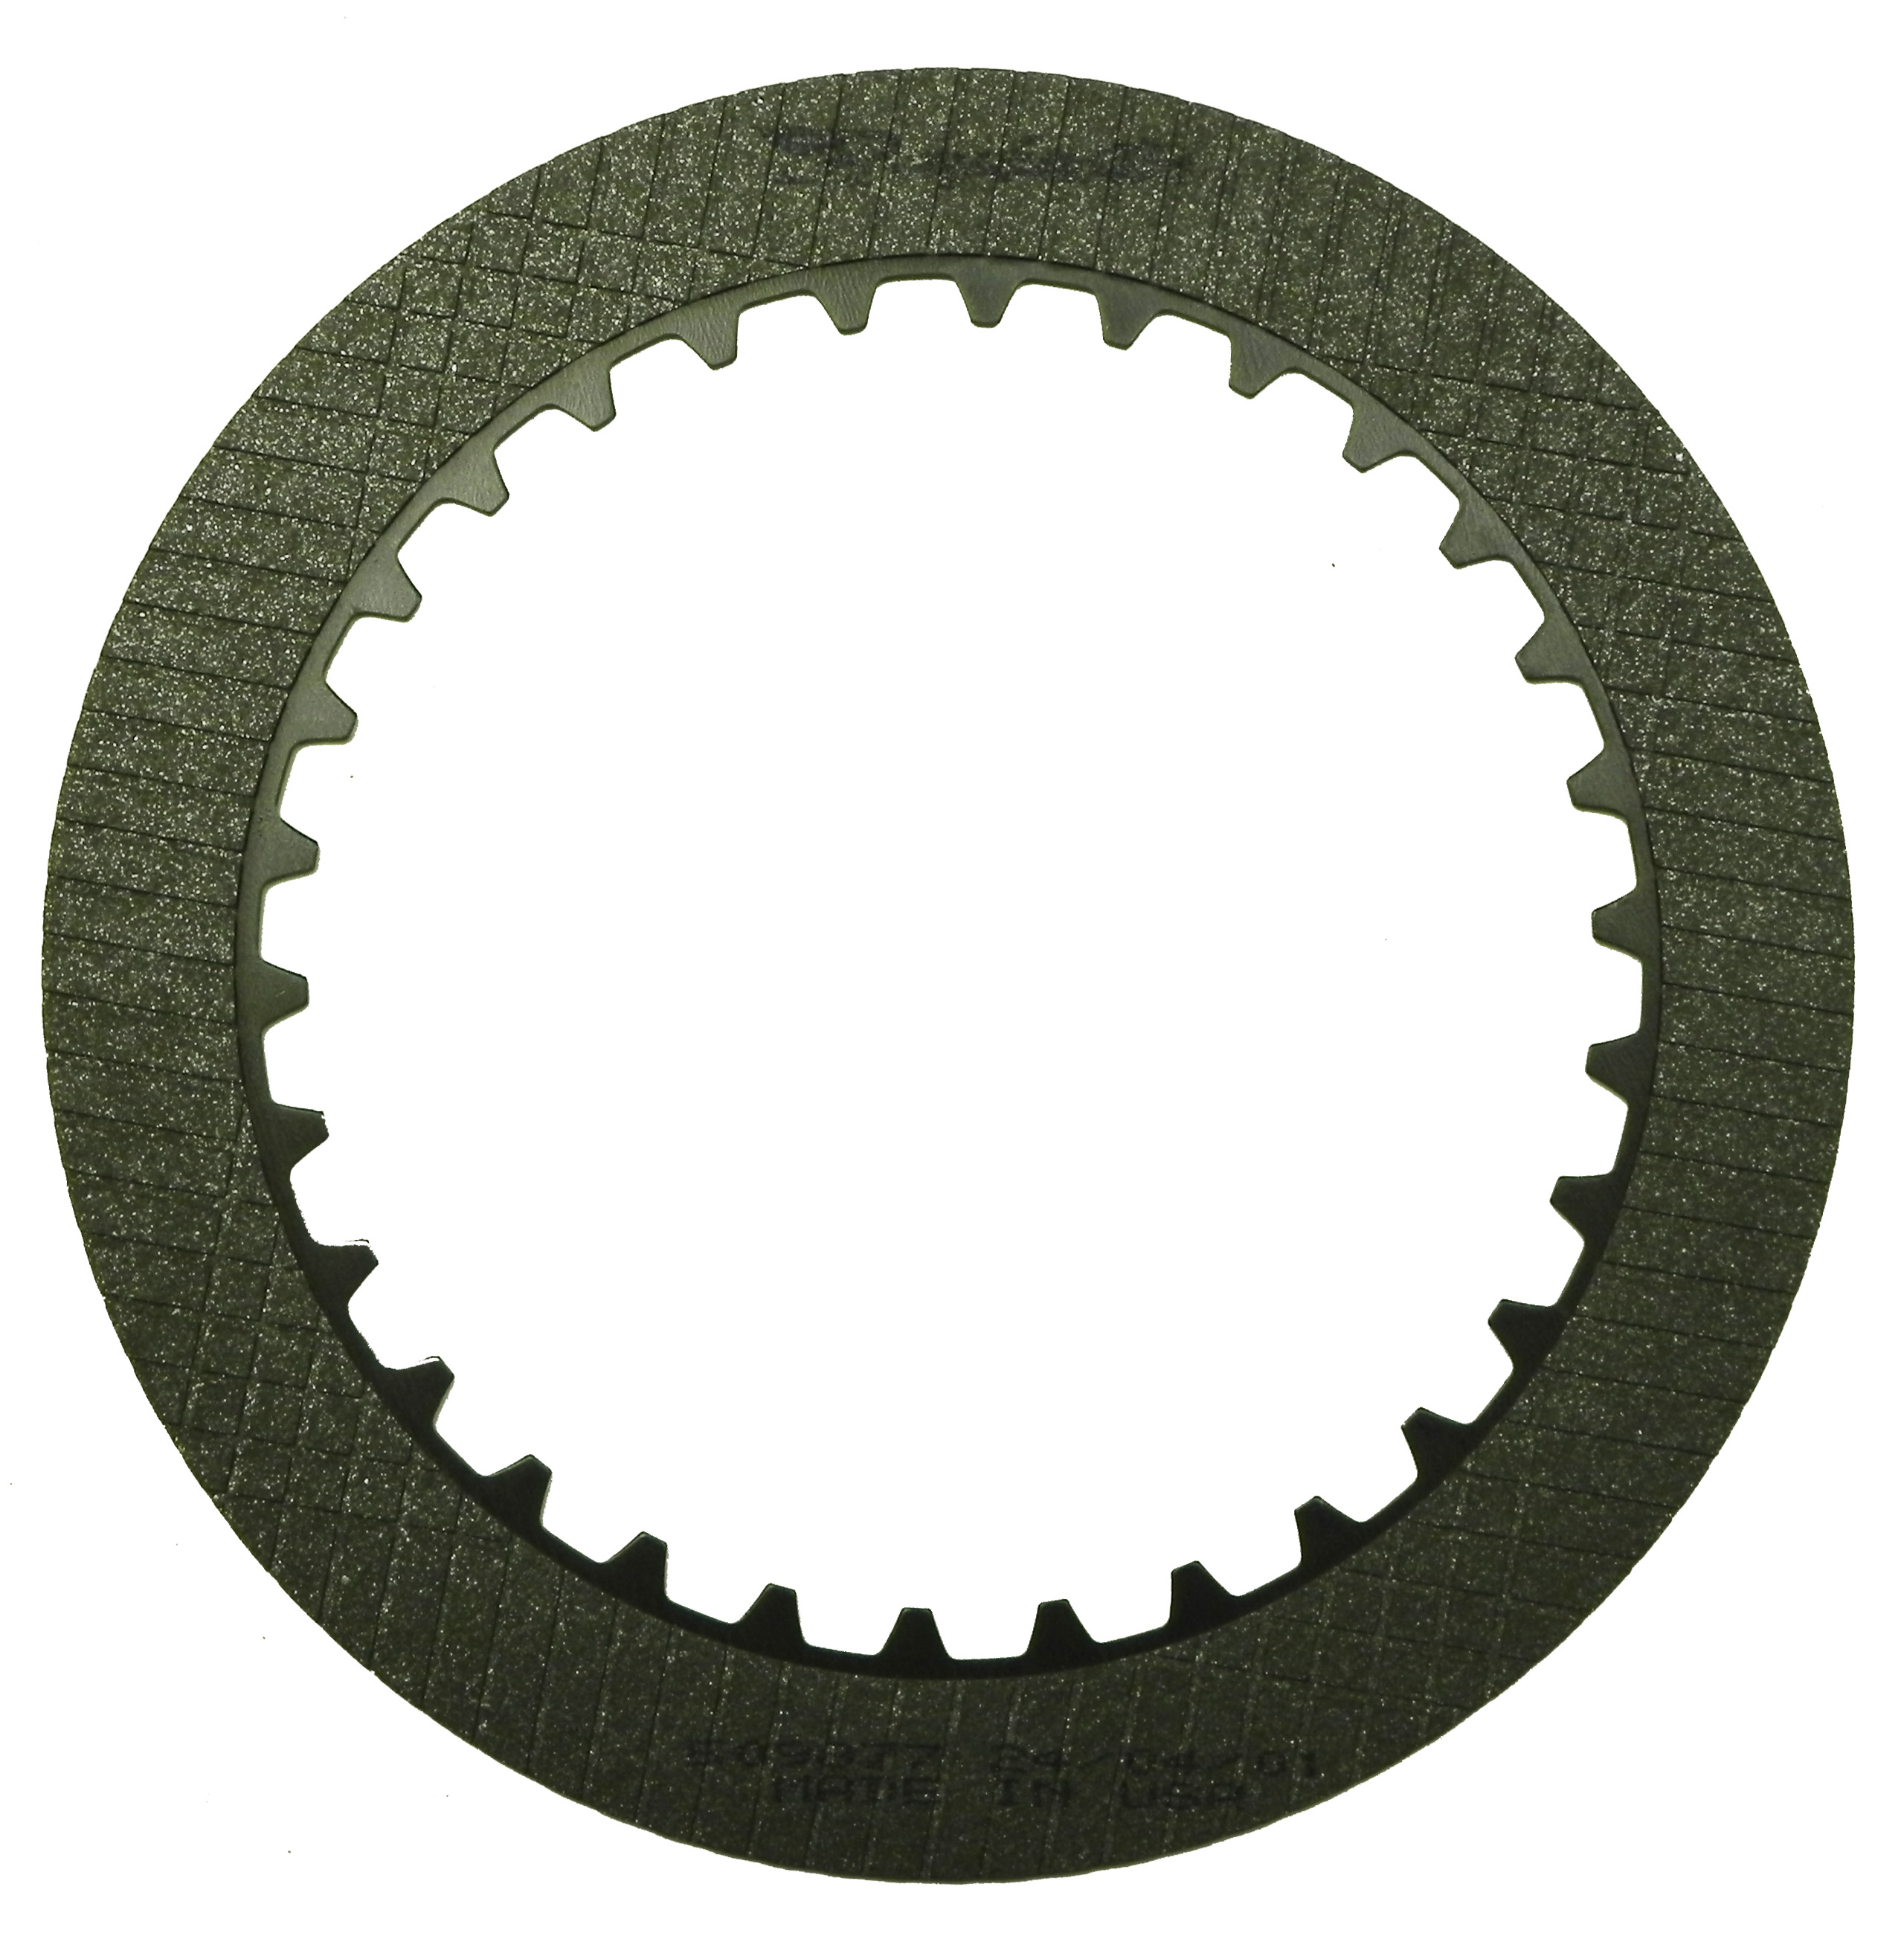 R509877 | 1972-ON Friction Clutch Plate Graphitic Forward, 4th Graphitic